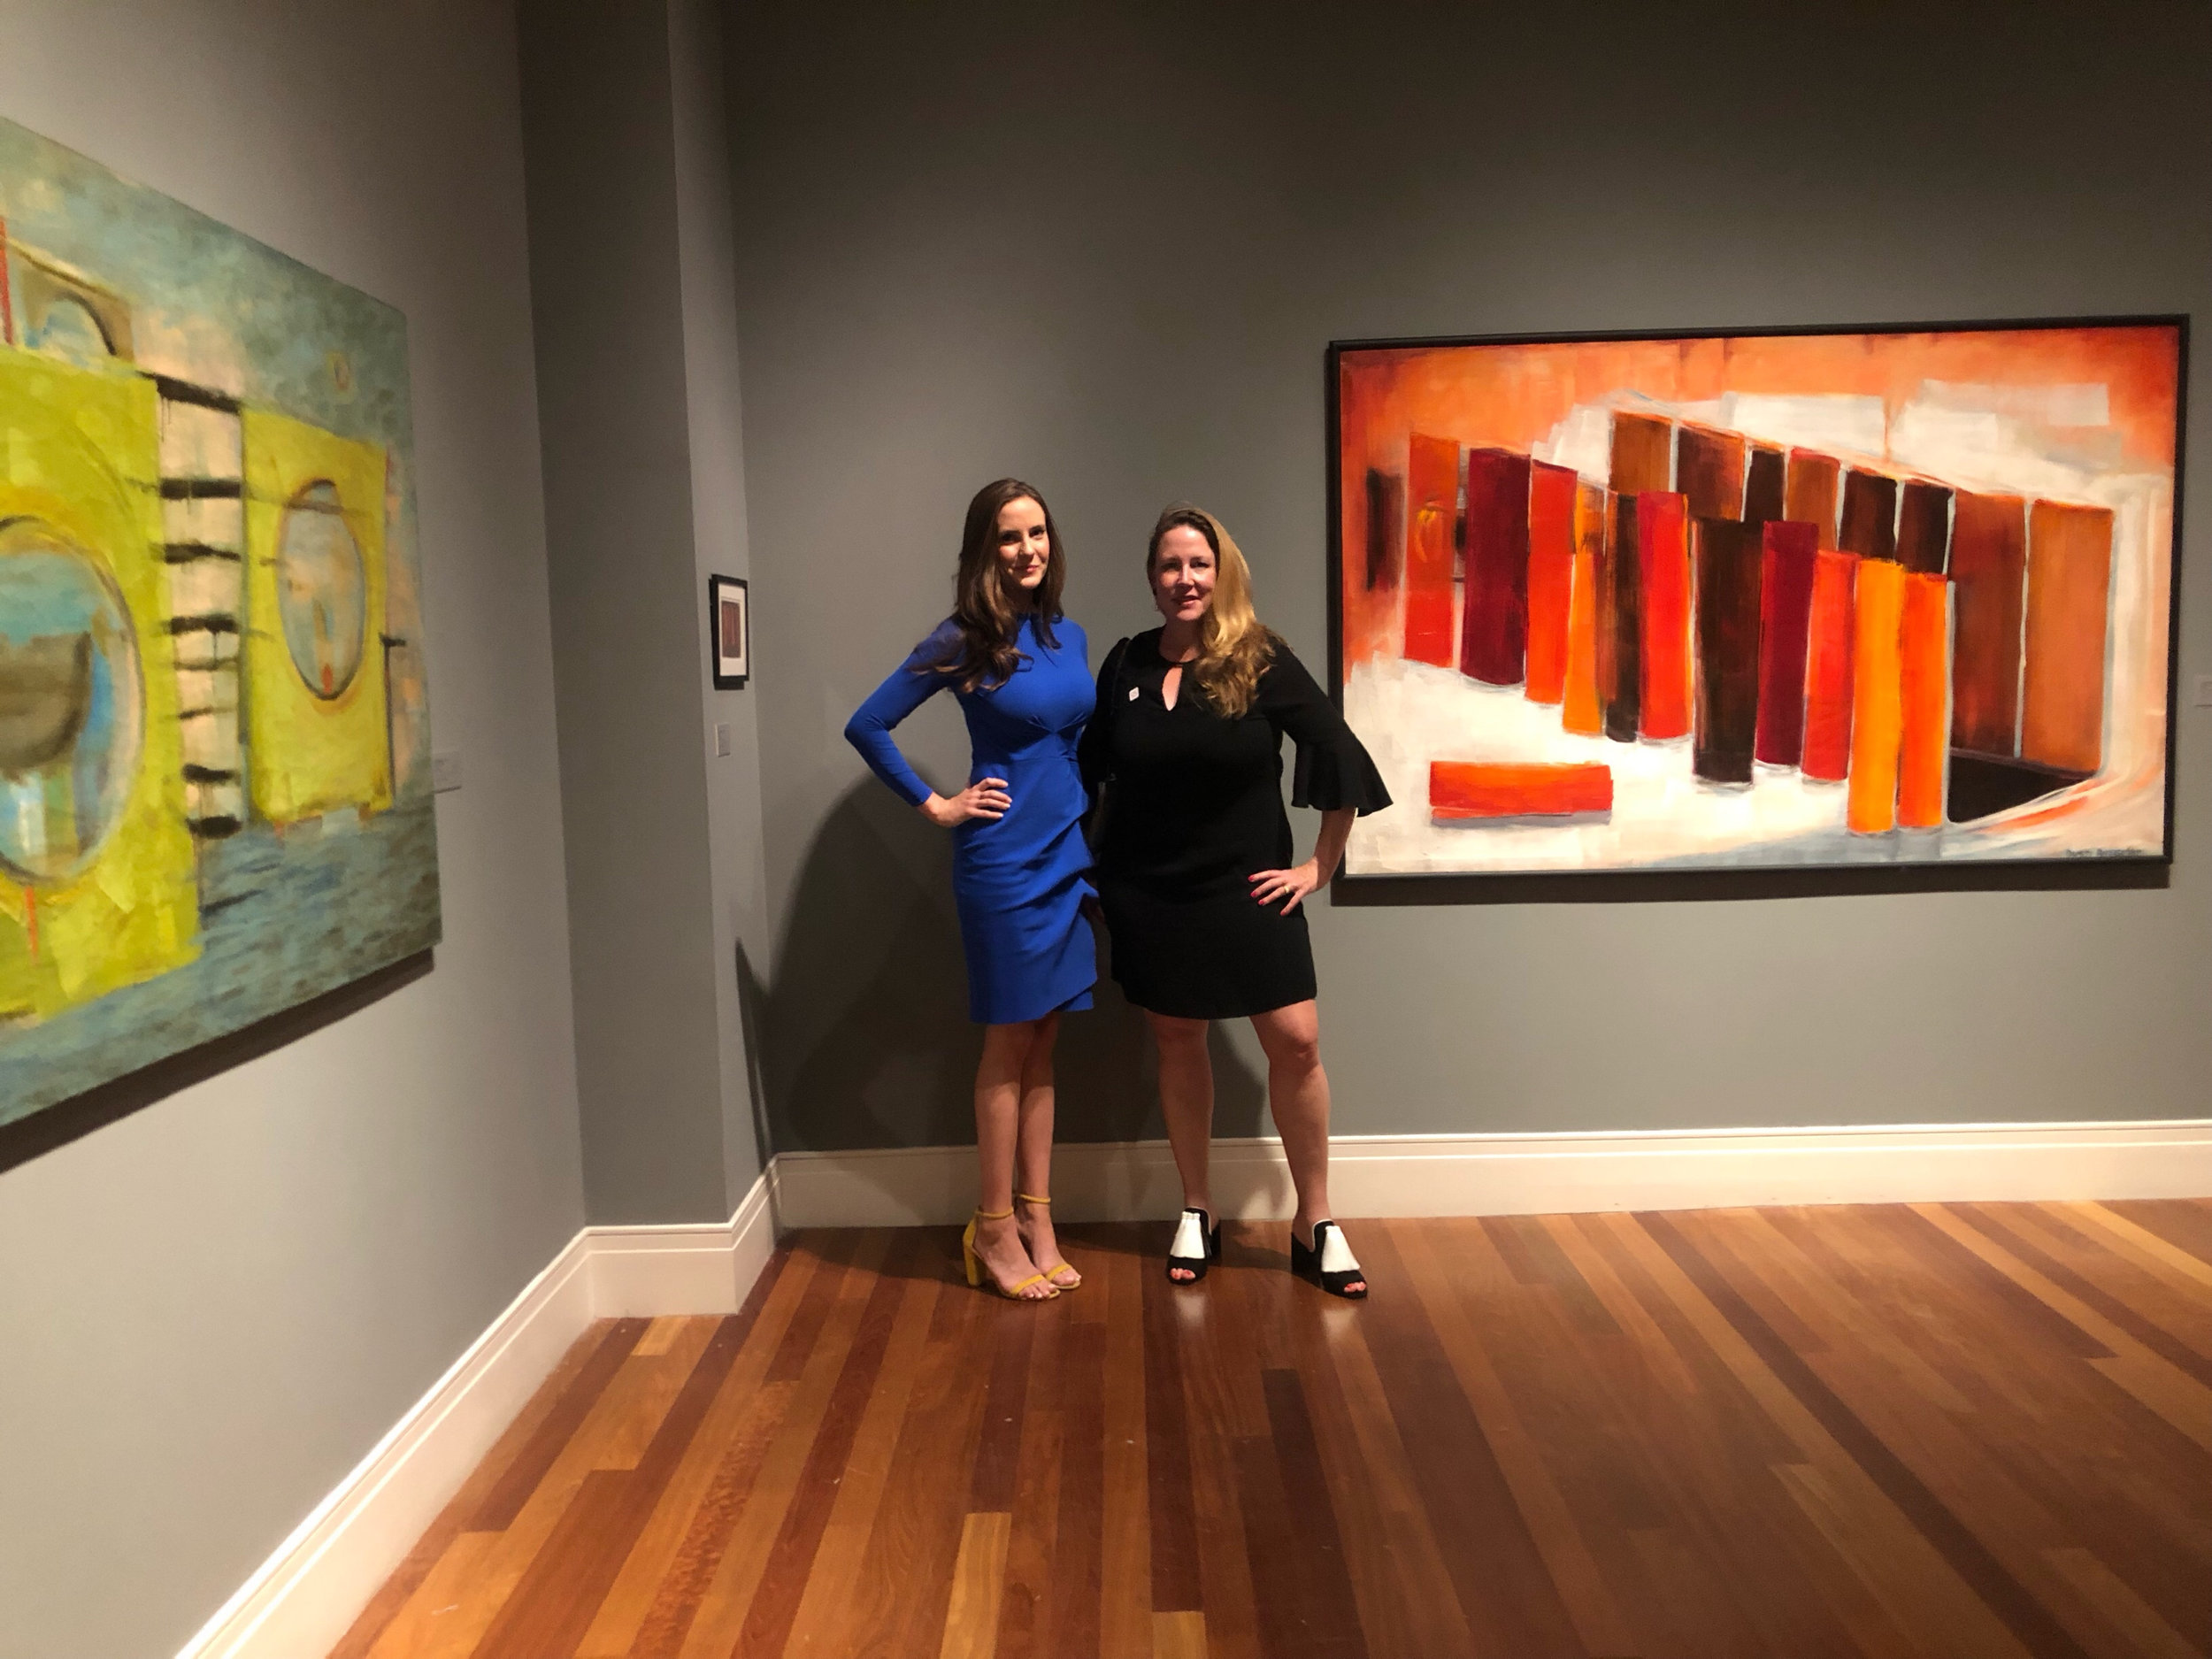 Cameron and Amanda at the opening of  Piercing the Inner Wall: The Work of Dusti Bongé  at the Ogden Museum of Southern Art in New Orleans, Louisiana.